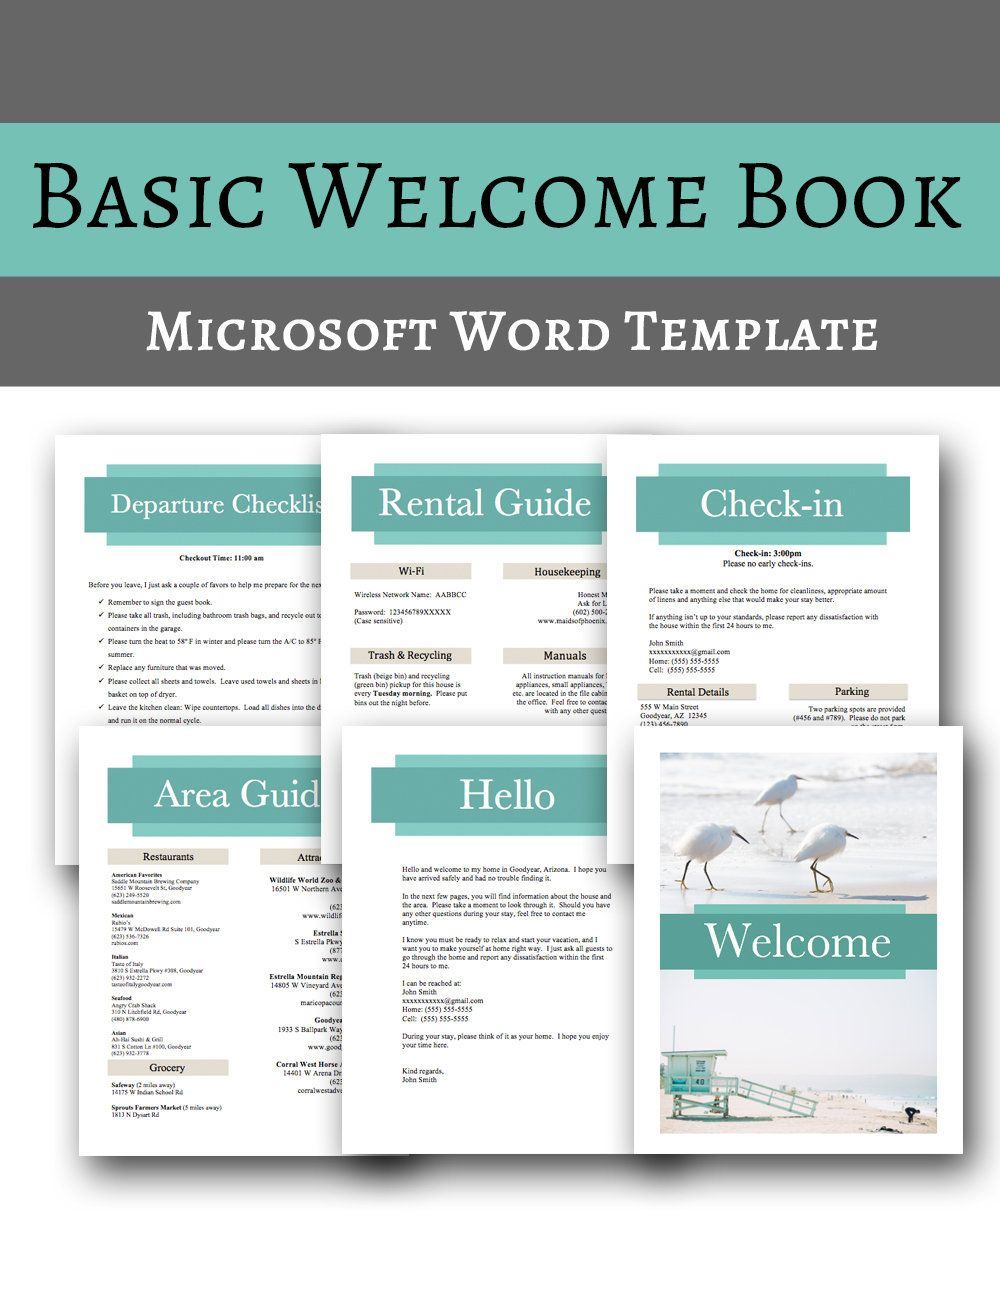 Basic Book Vacation Home Printable Template, MS